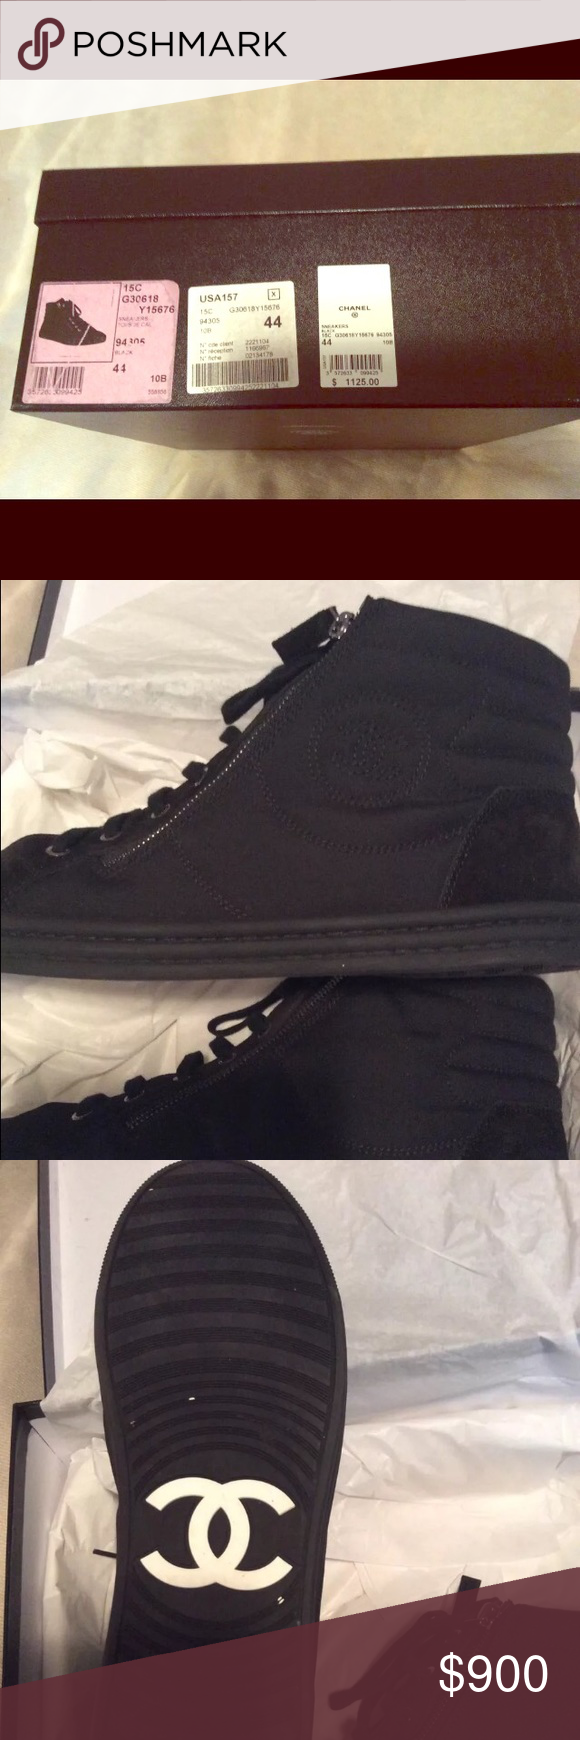 Chanel Men's Hightop Sneakers Chanel Sneakers Men's Size 44 like new condition. Worn for one occasion and have been stored in box since then. Comes with original box, dust covers. Purchased new at Las Vegas Chanel boutique. CHANEL Shoes Sneakers